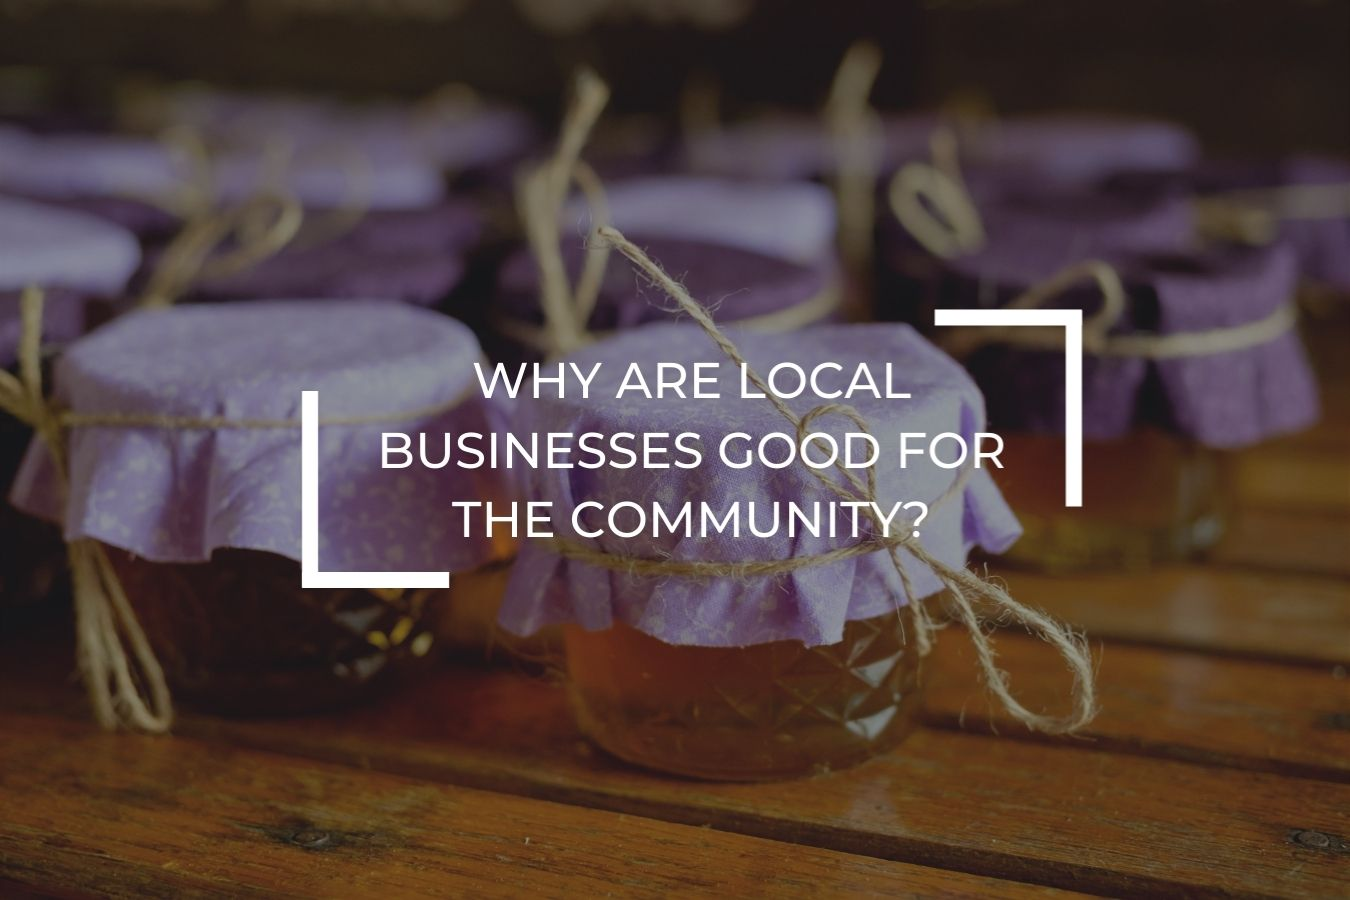 Why are local businesses good for the community